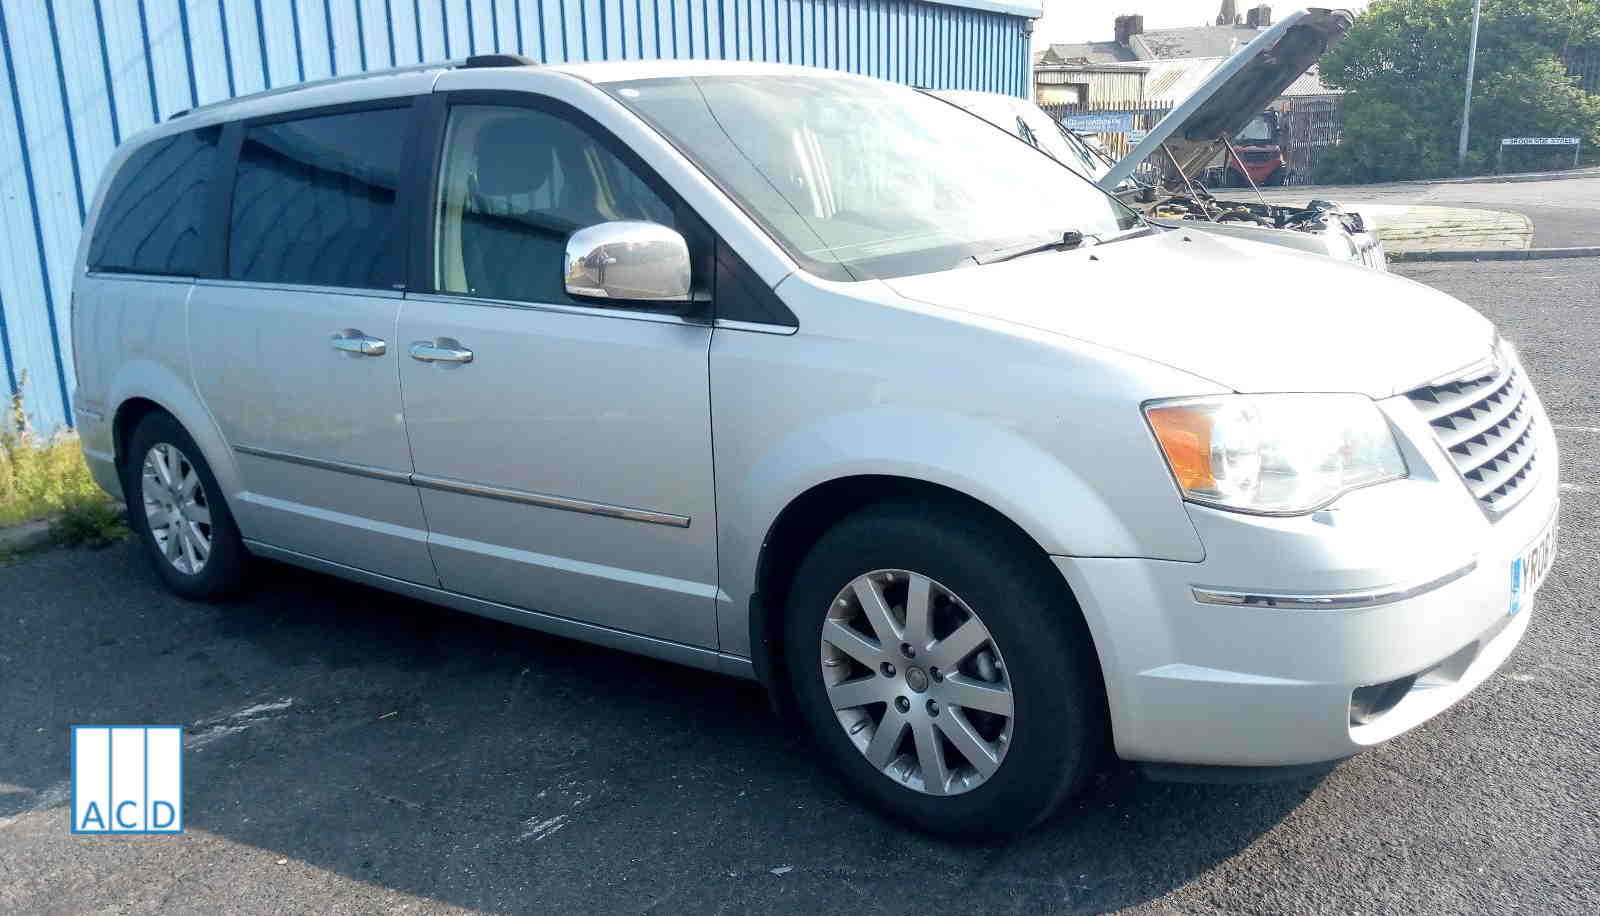 2008 Chrysler Grand Voyager parts for sale.